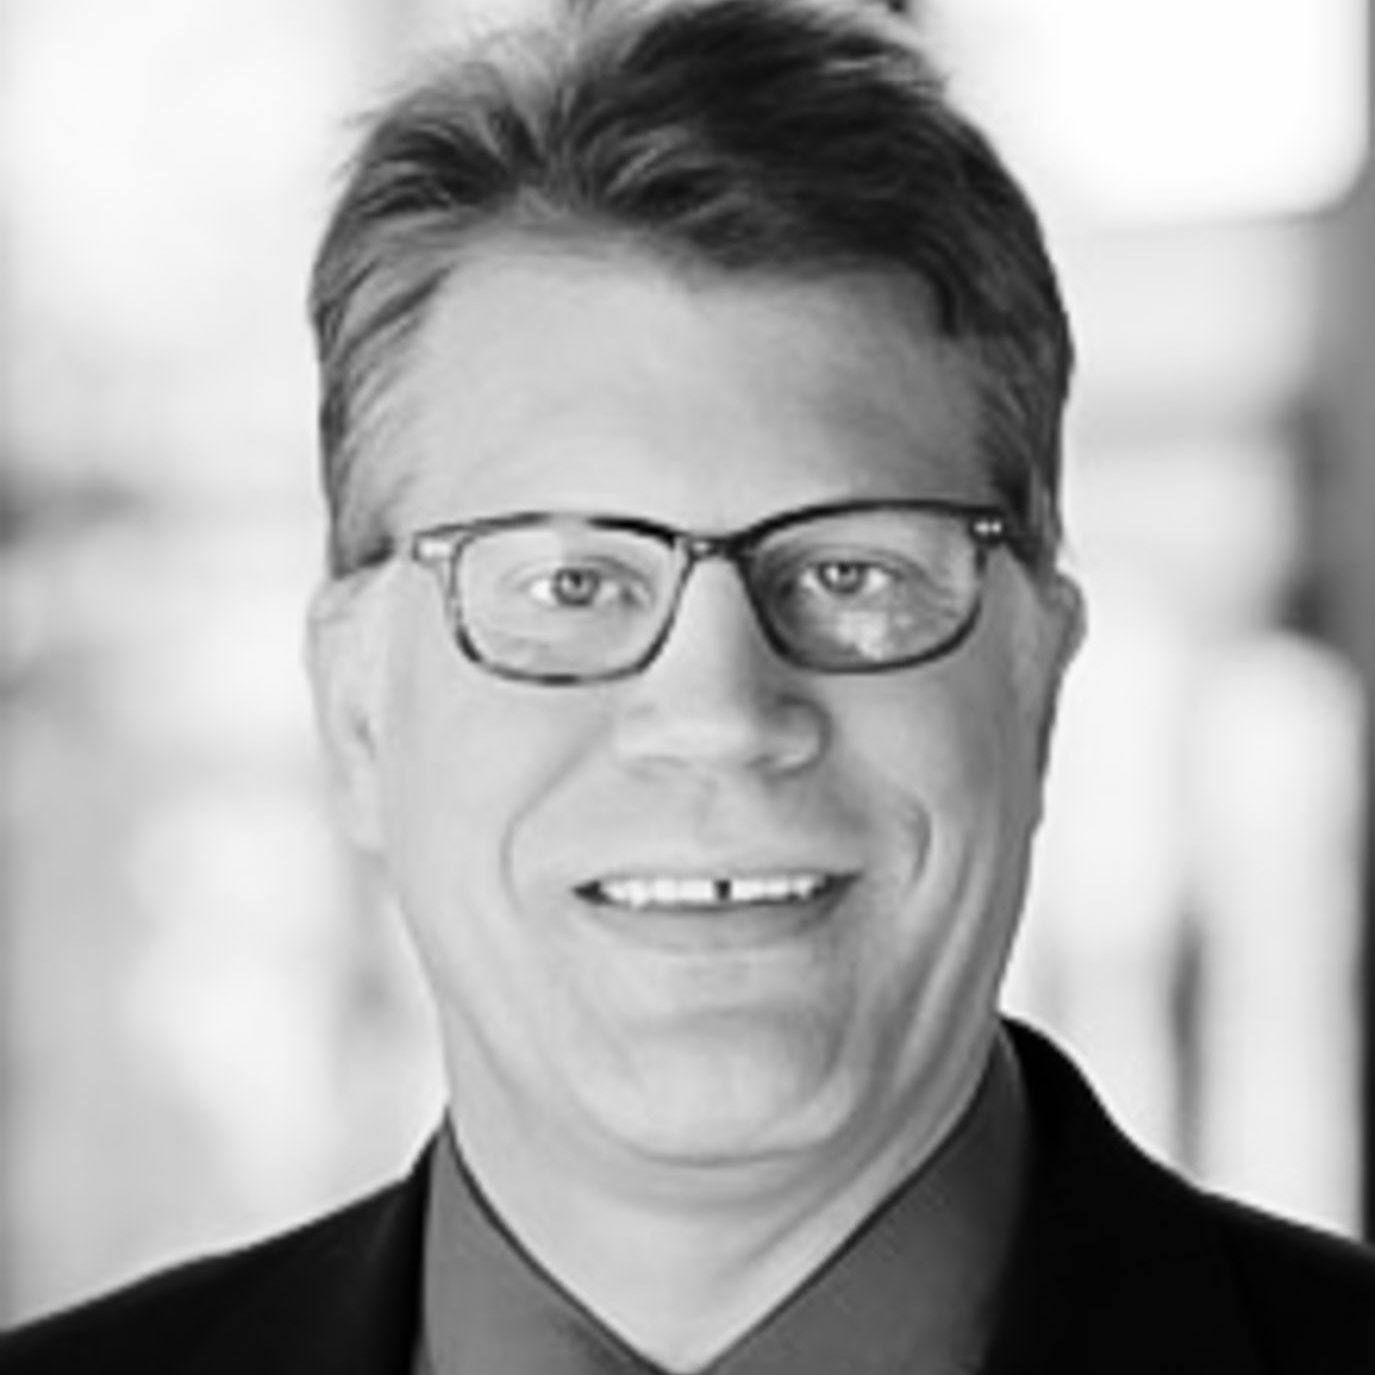 Steven Paulson - (Th.D., Lutheran School of Theology, Chicago, IL) is Professor of Systematic Theology at Luther Seminary in St. Paul, MN. He is the author of Luther for Armchair Theologians; Lutheran Theology; A Brief Introduction to Martin Luther.